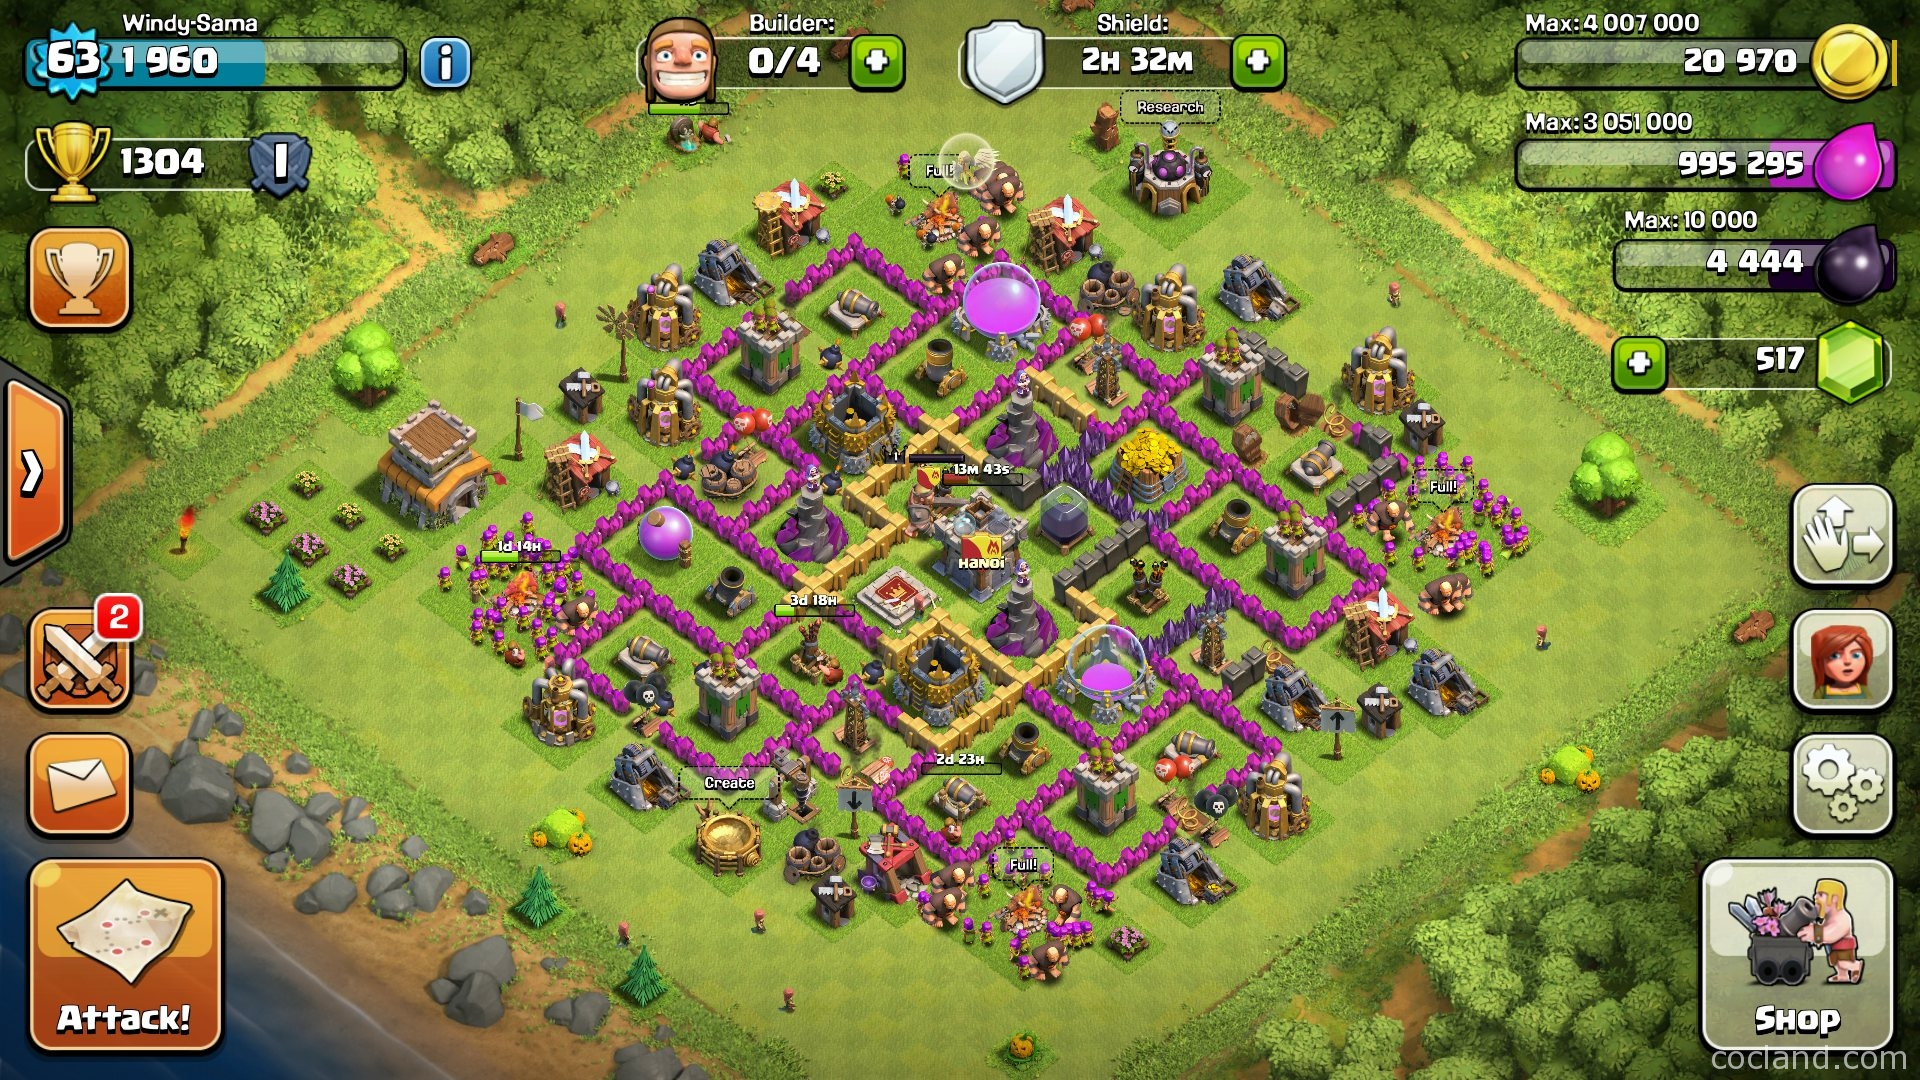 best-clash-of-clans-th8-base-designs-with-4-mortars